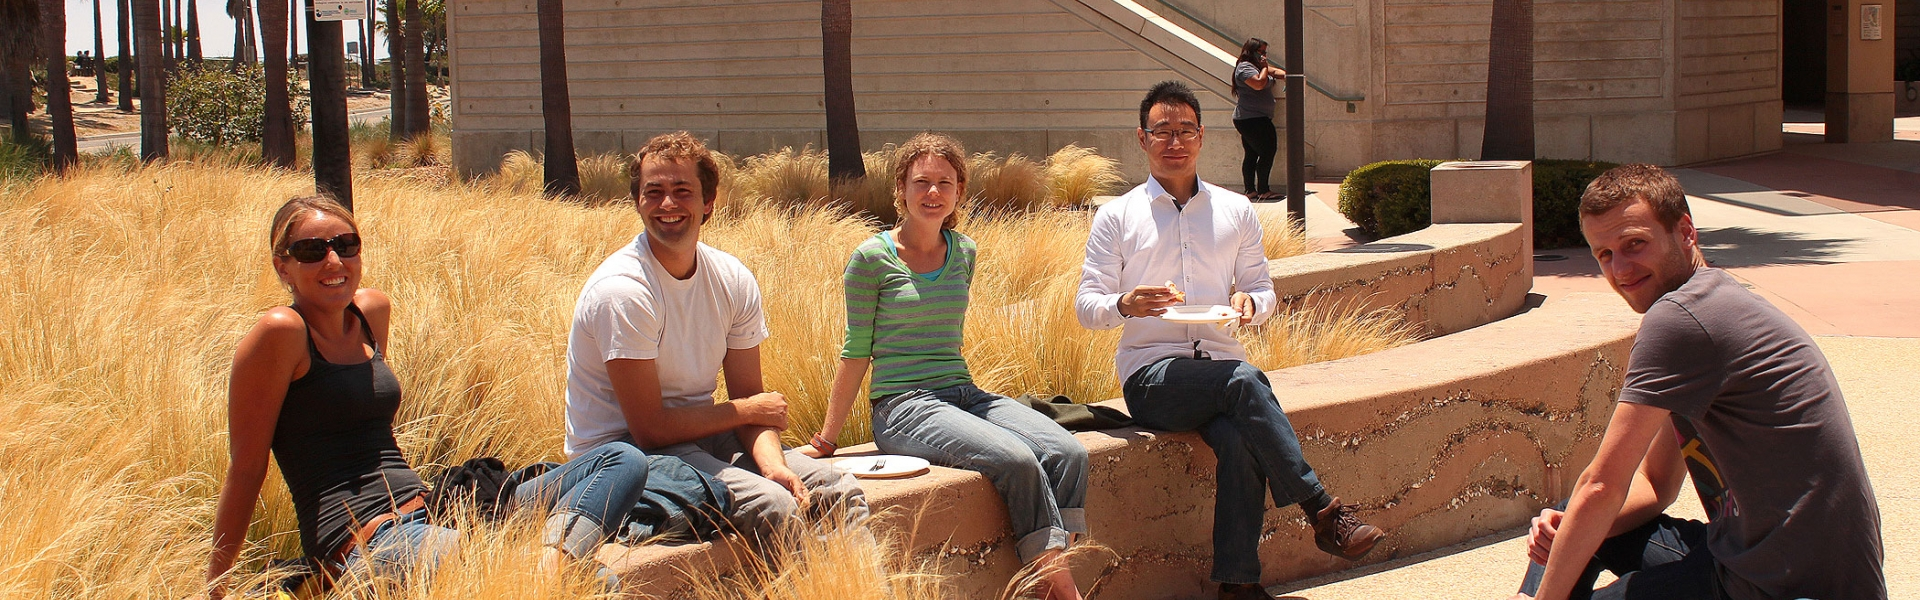 Five students sitting on stone benches by tall grass